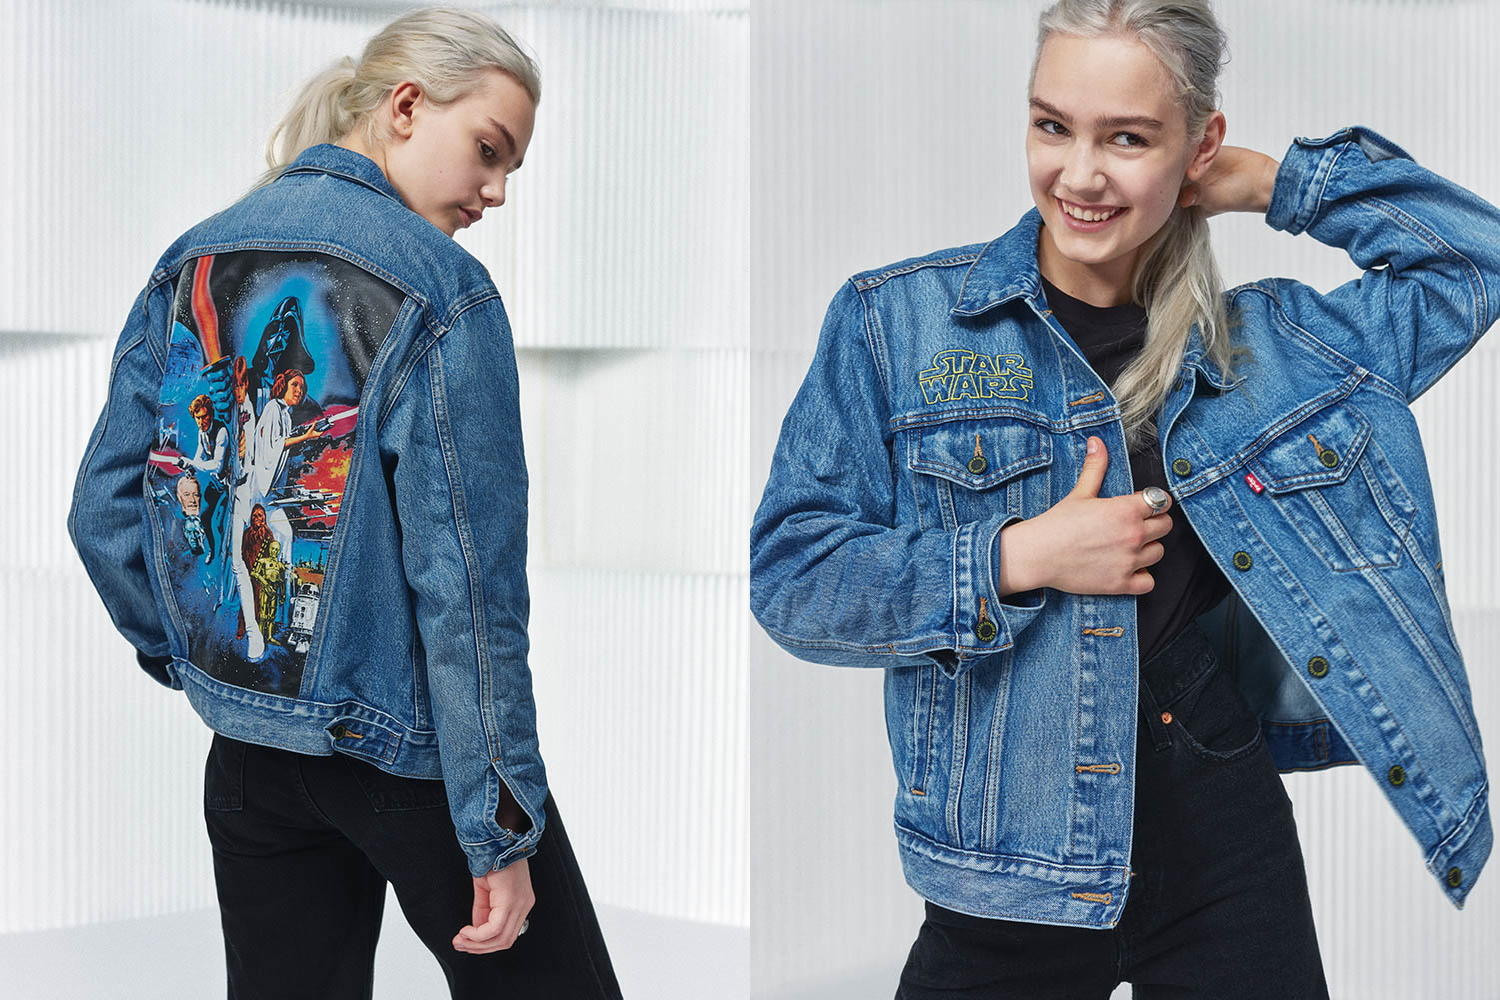 New Star Wars x Levi's Collection Reveal